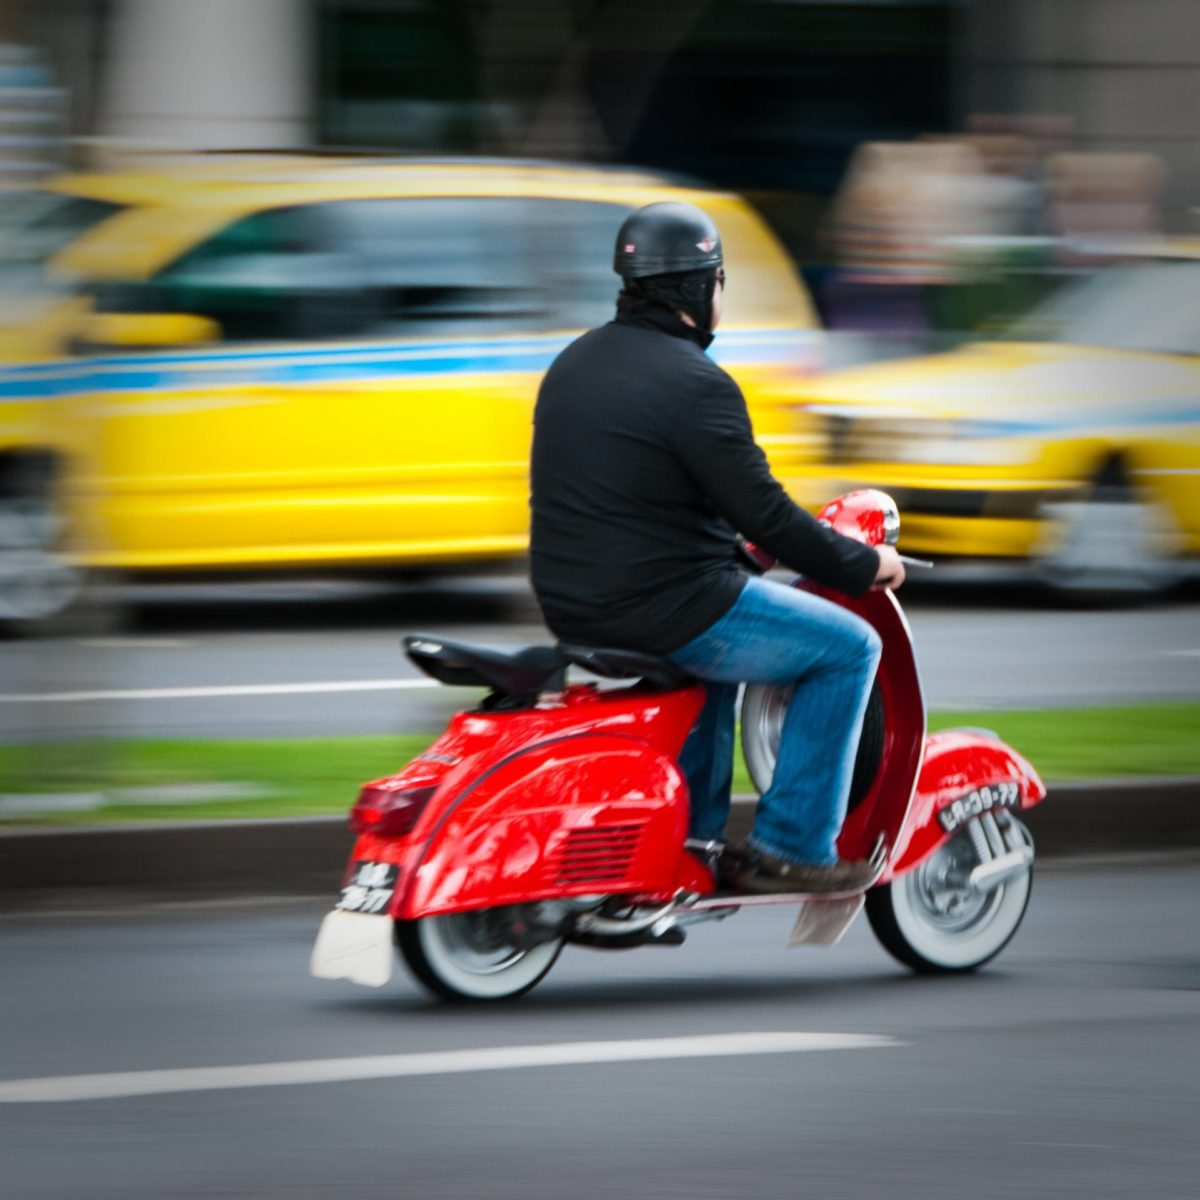 Used Vespa Scooters For Sale Illinois – Tattos and Scooter